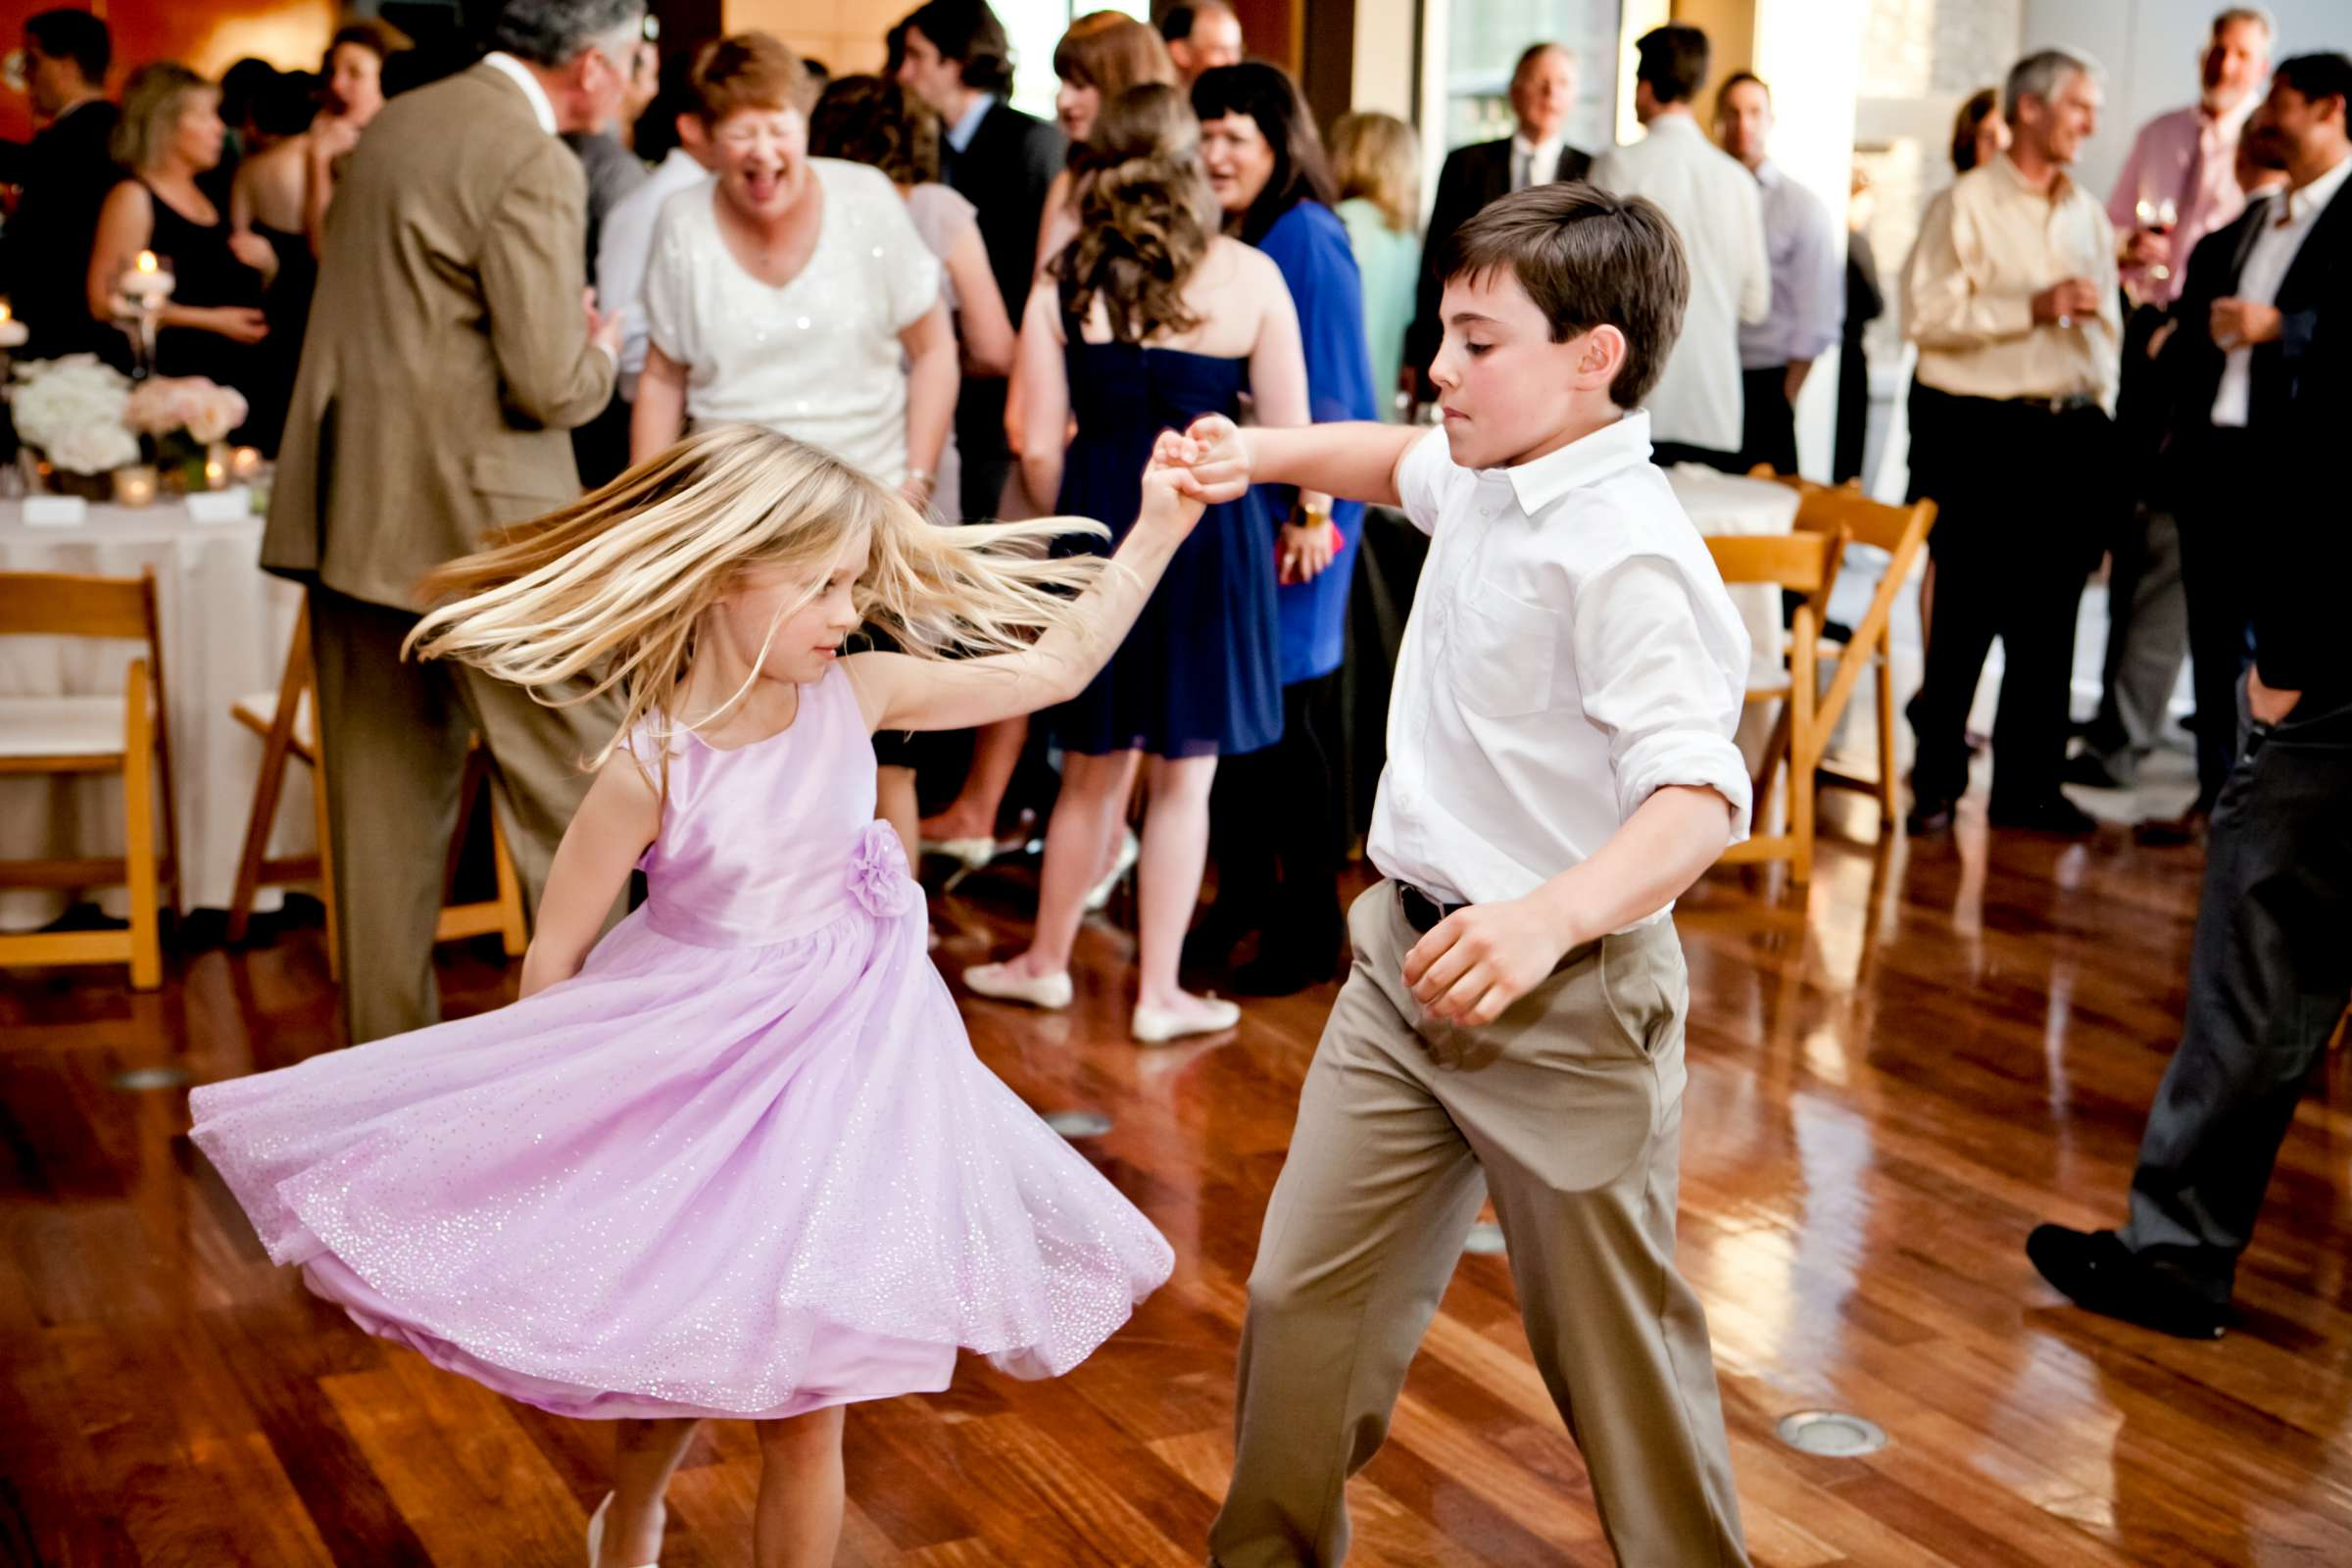 Dancing, Kids at Ultimate Skybox Wedding, Chelsea and Frank Wedding Photo #54 by True Photography